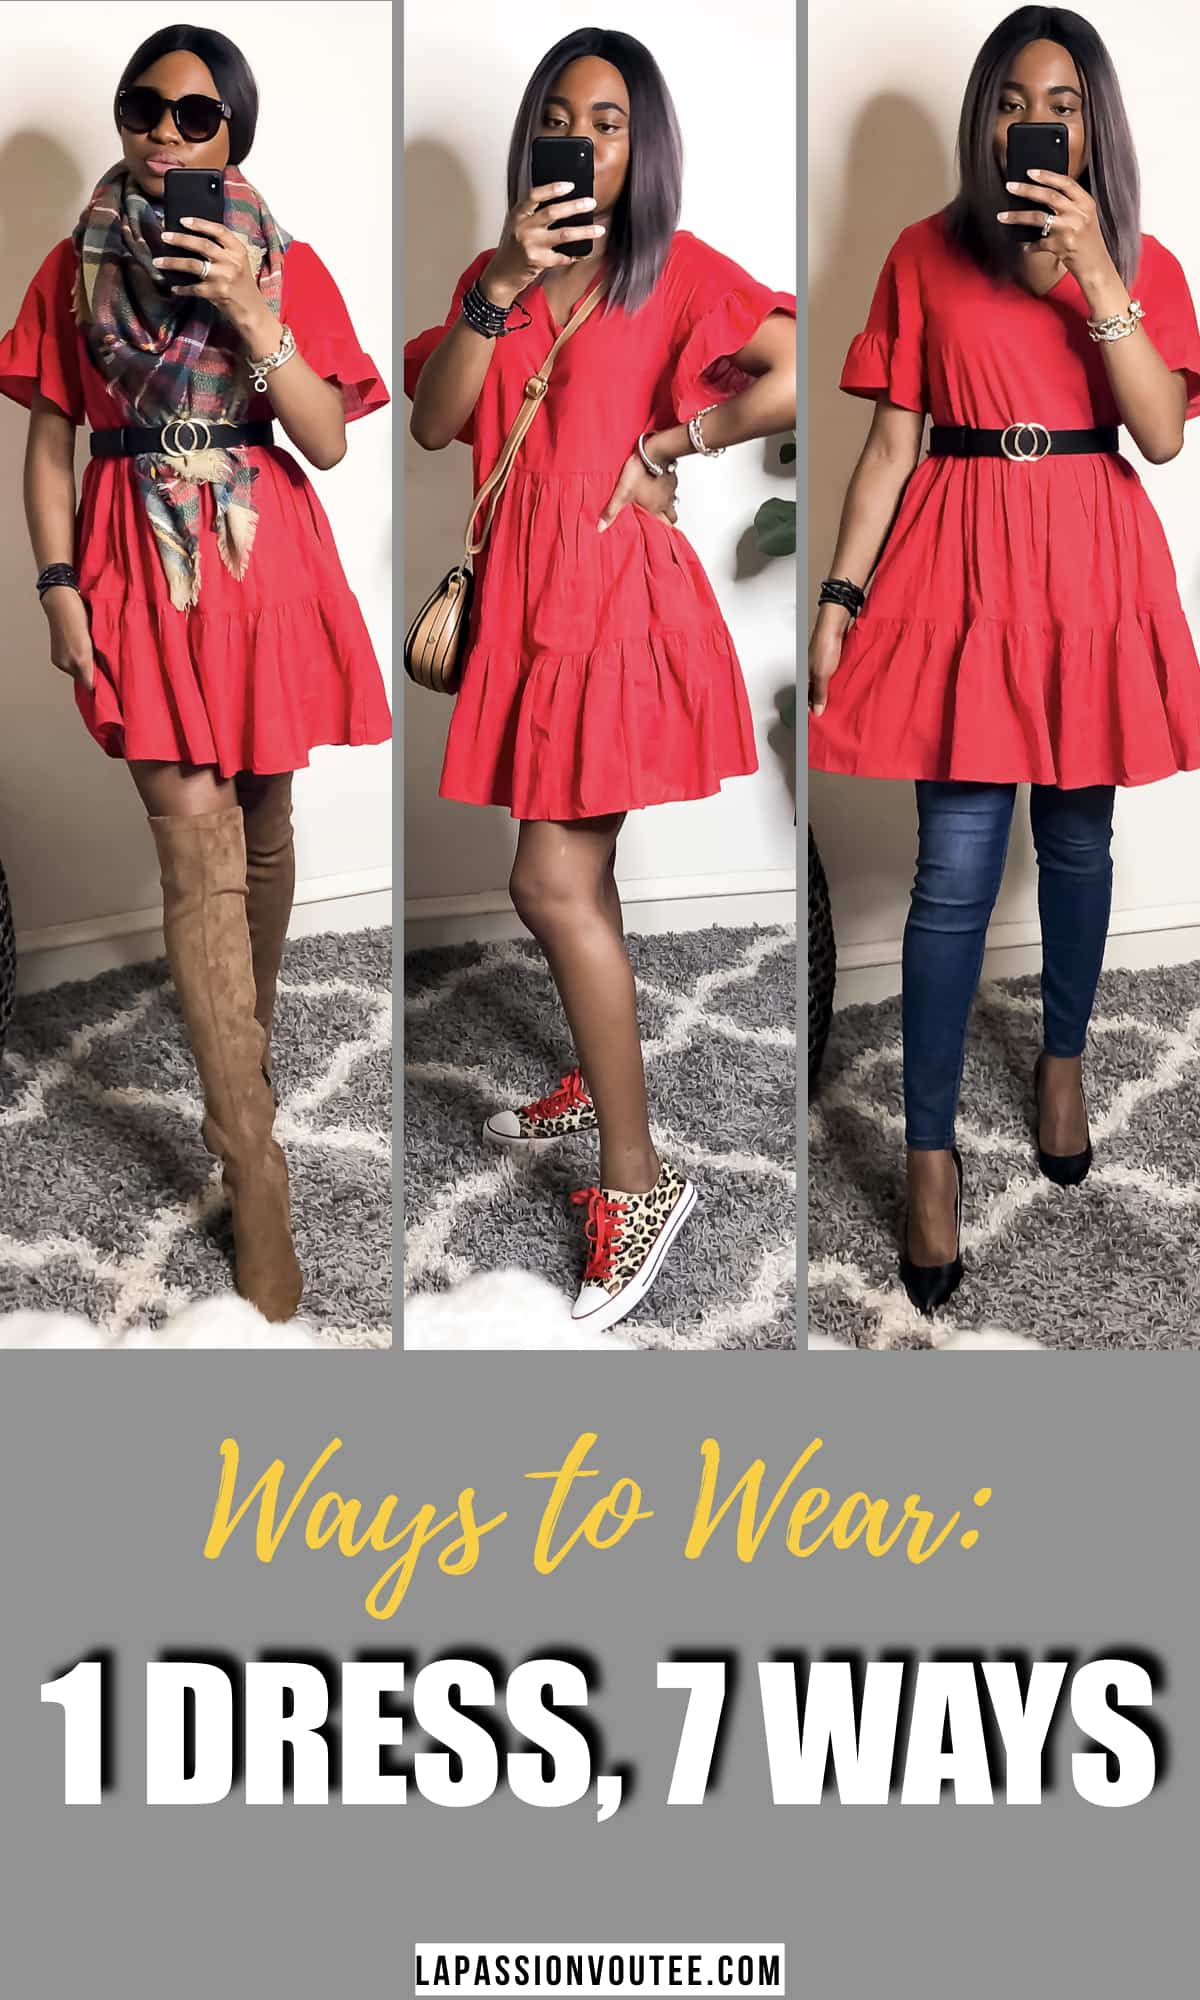 It's no secret that a stunning red dress might be all you need to create a breathtaking, hard-to-ignore appearance during the day and even at night. Move over LBD! See 7 unique ways to rock this under $30 red shift dress